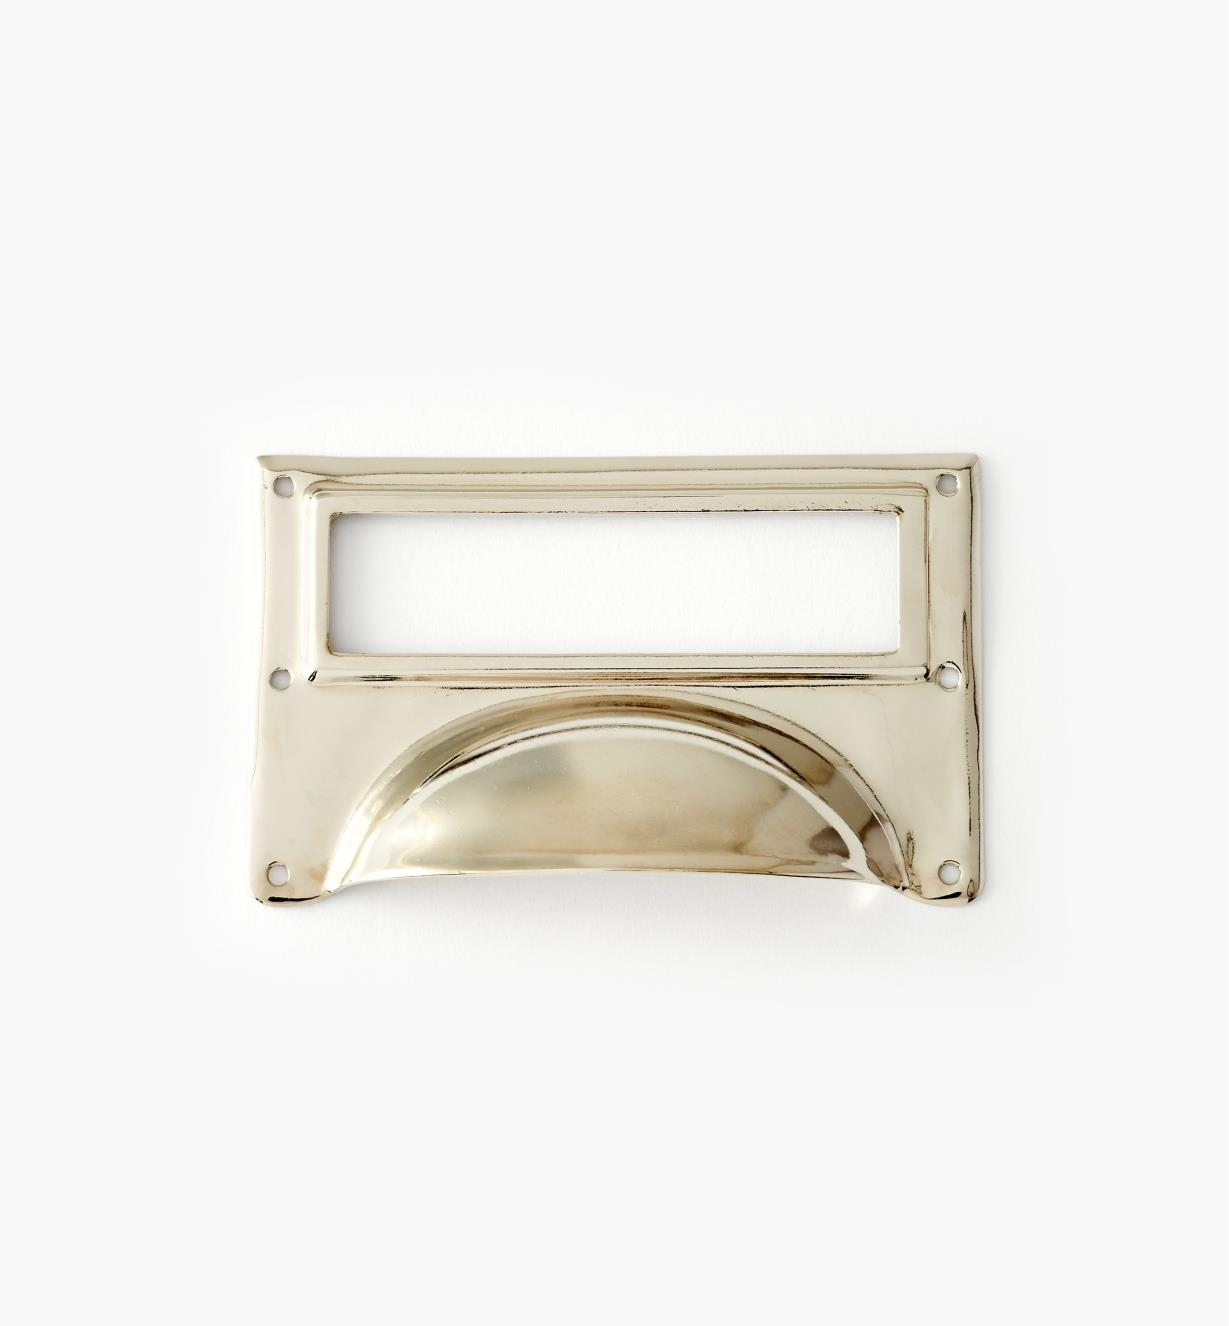 01A5735 - Chrome-Plated Card Frame Pull